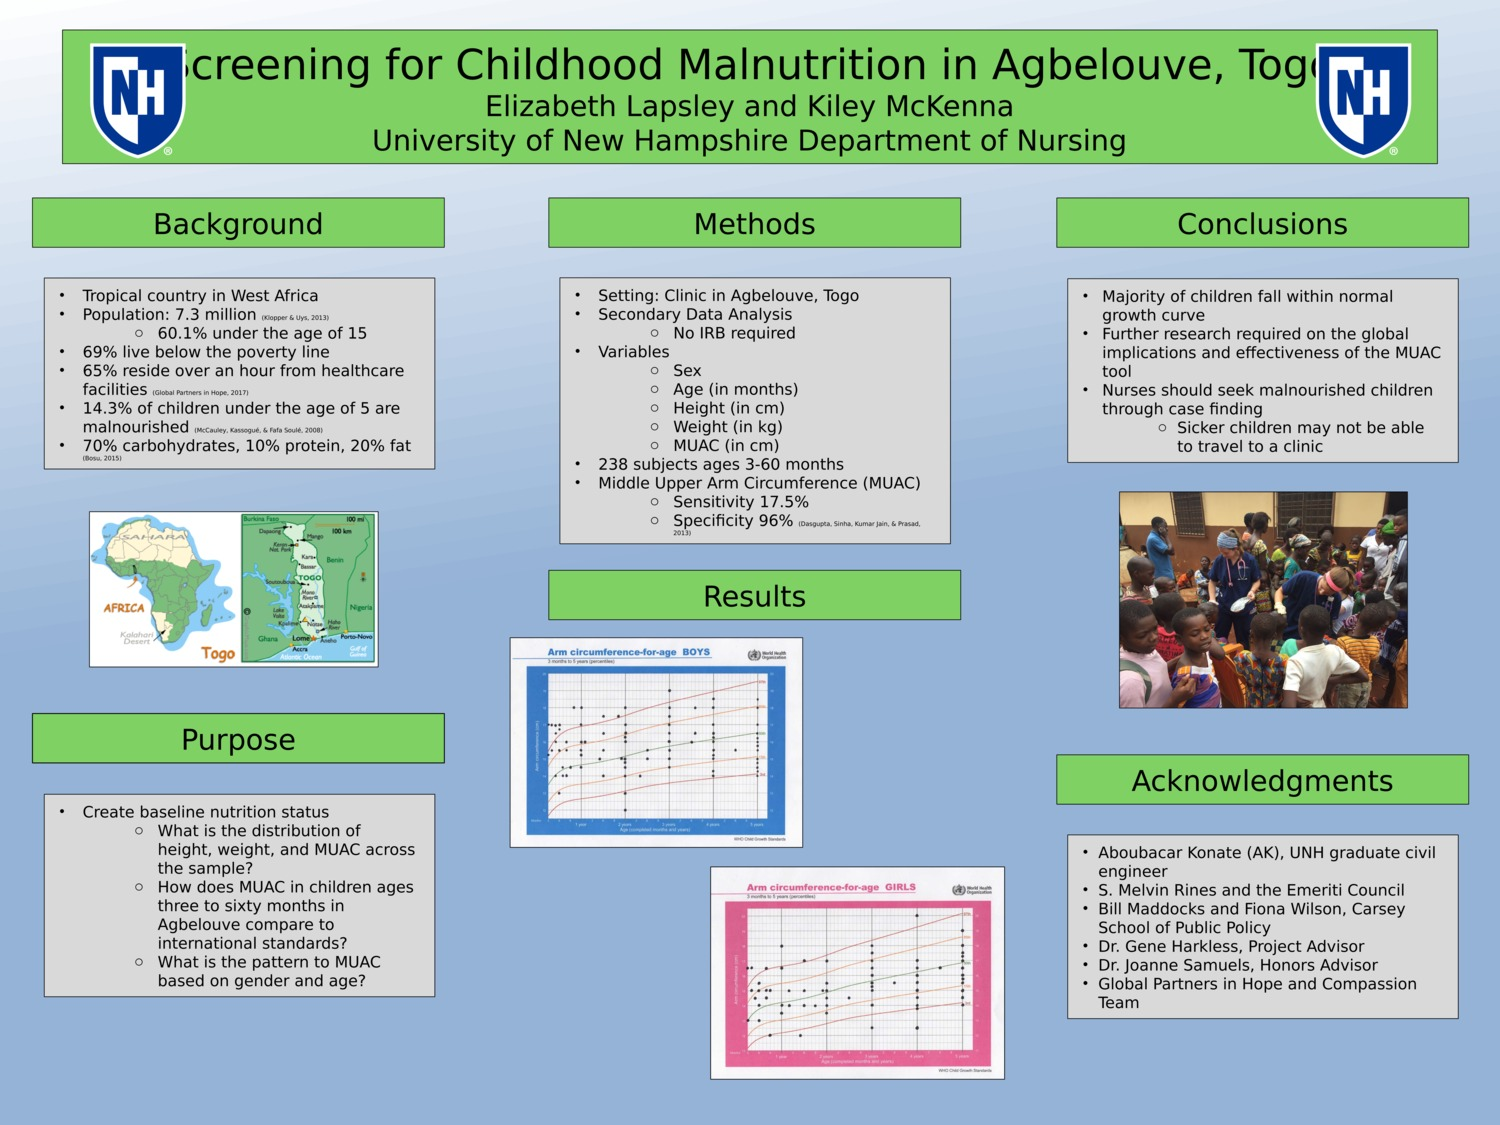 Screening For Malnutrition In Agbelouve, Togo by ehl2002